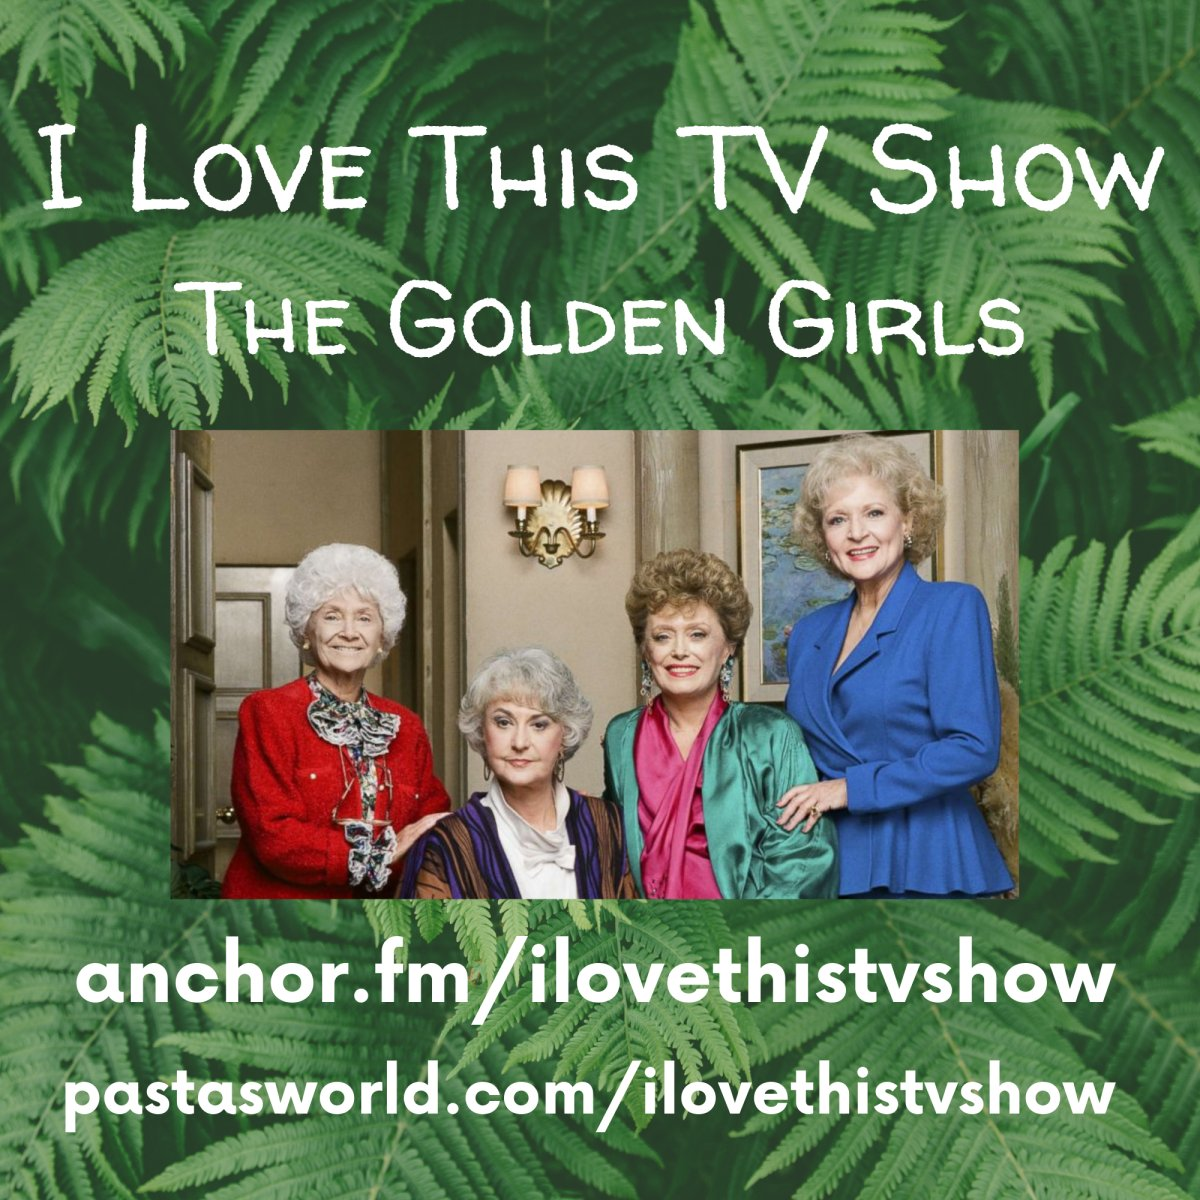 I Love This TV Show: The Golden Girls S2Ep06 - Big Daddy's Little Lady #podcast  #thegoldengirls #goldengirls